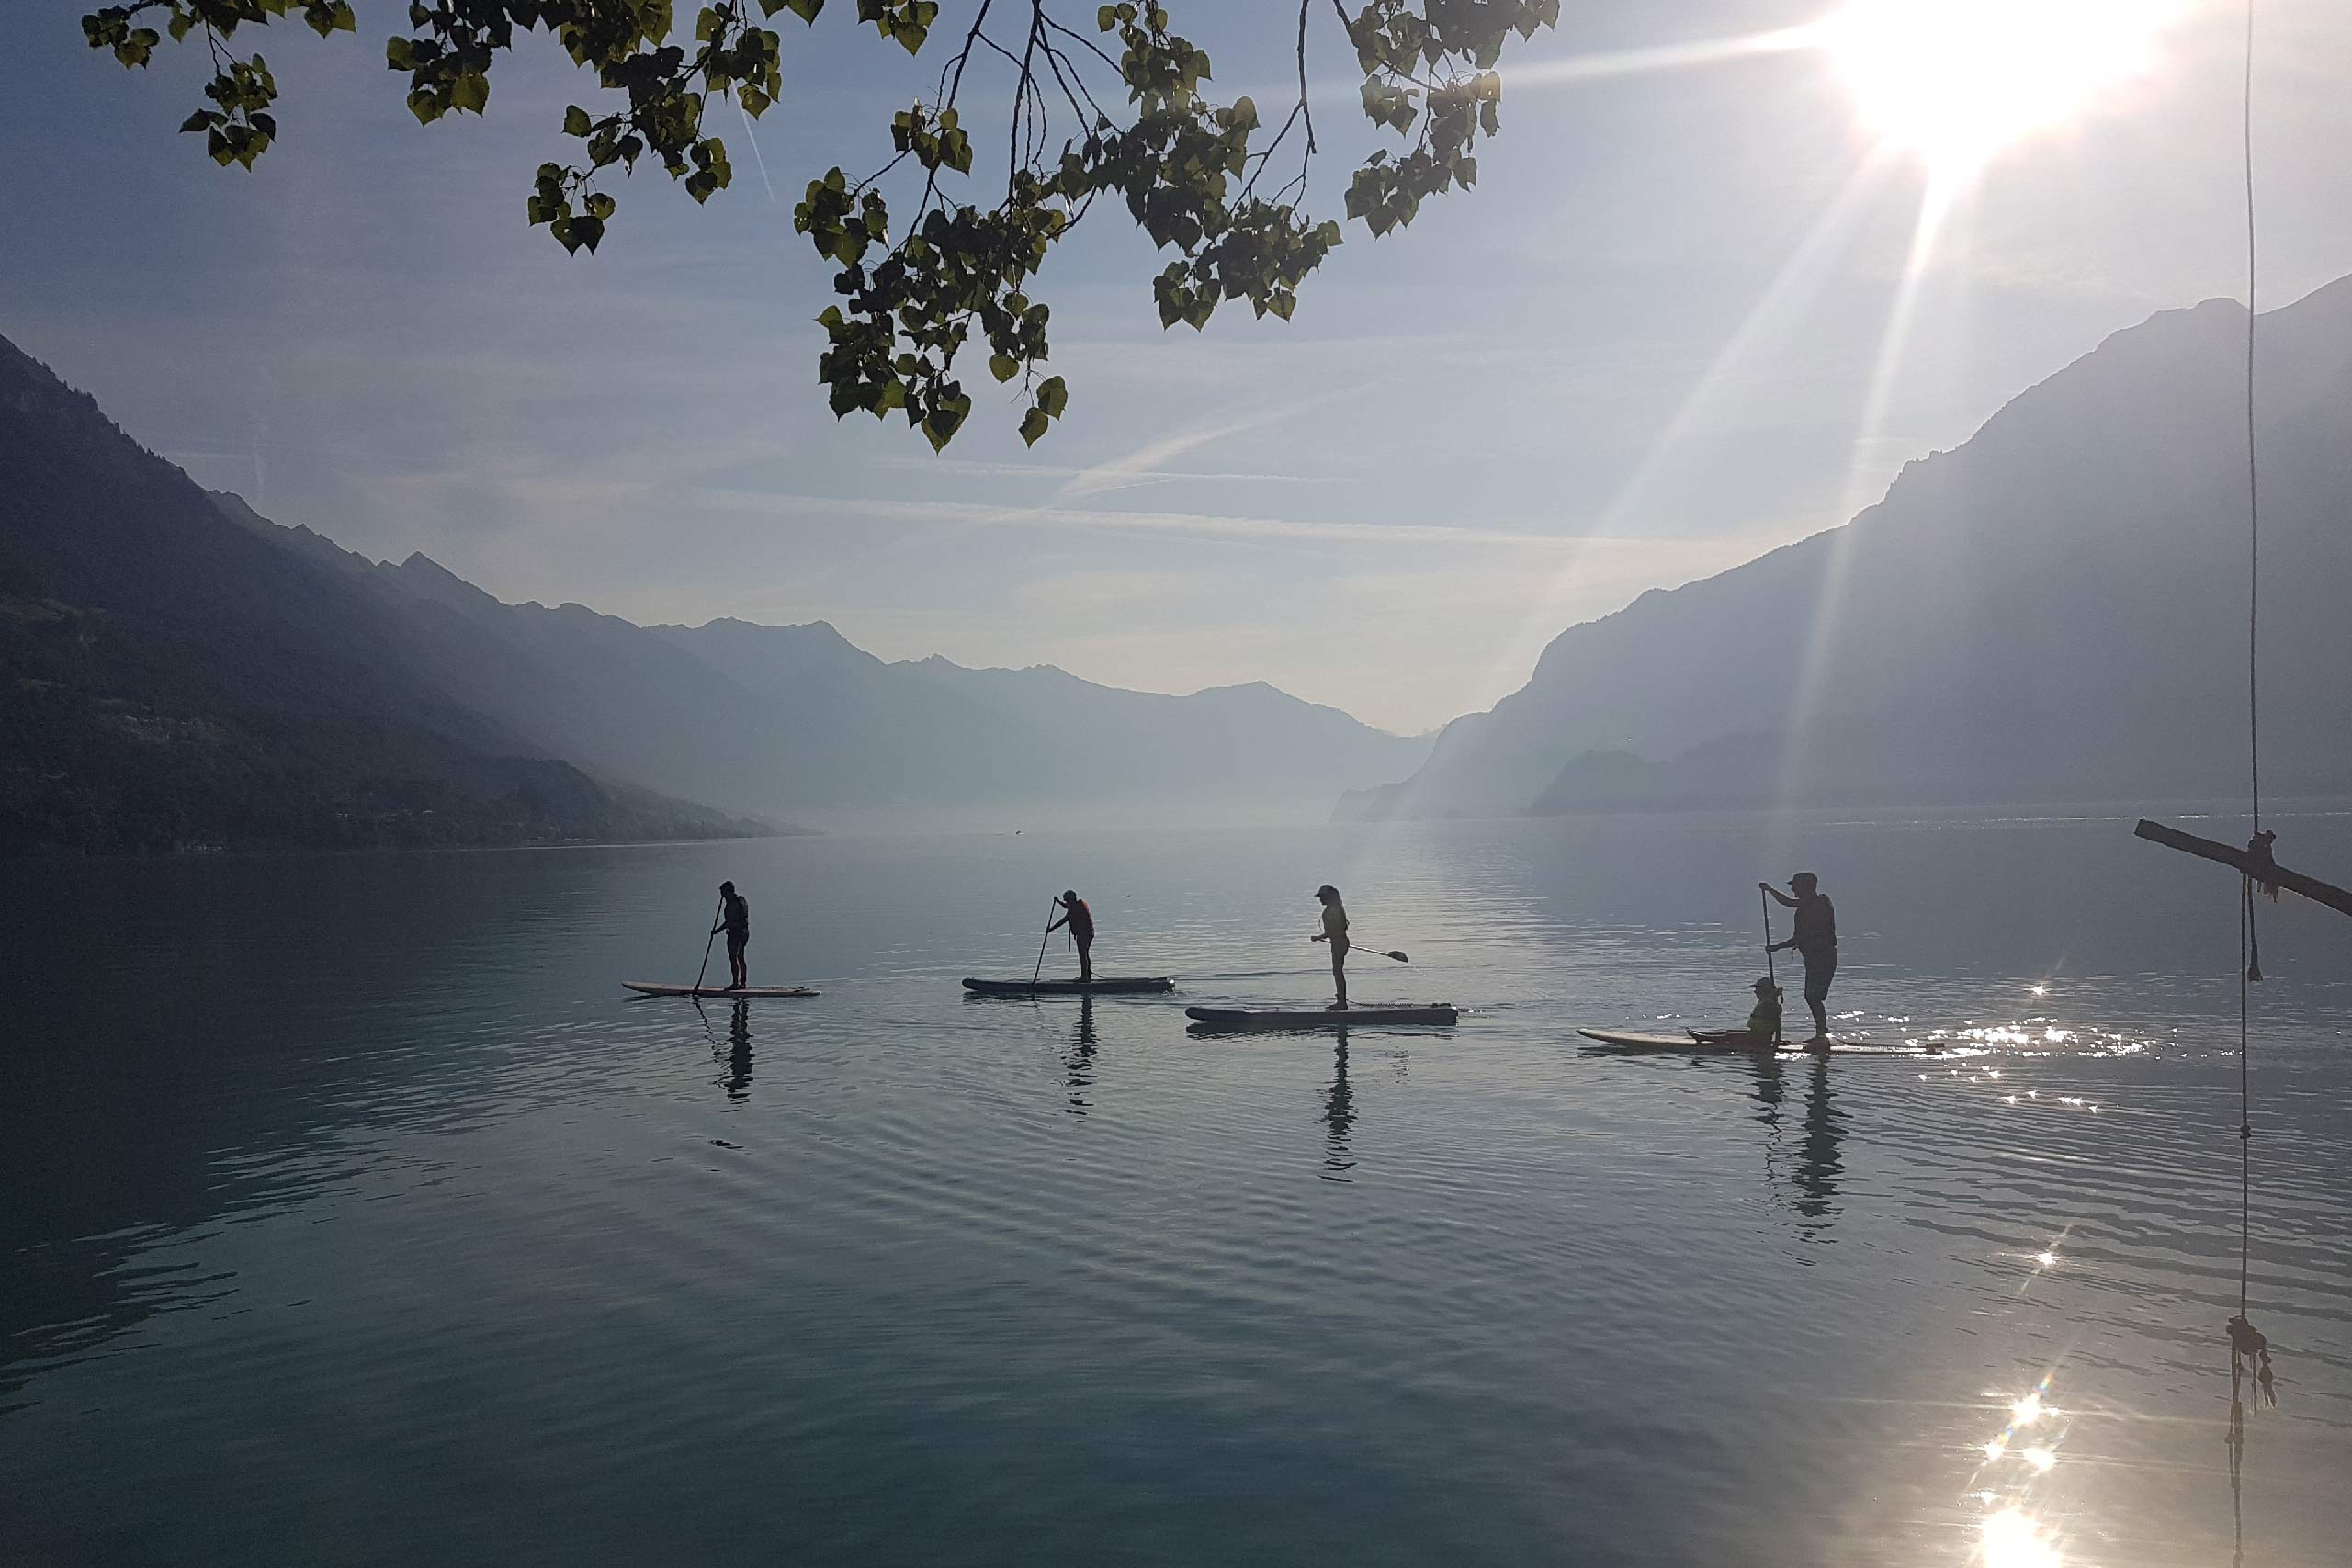 sup-fit-fun-brienzersee-gruppe-morgen-sonnenaufgang